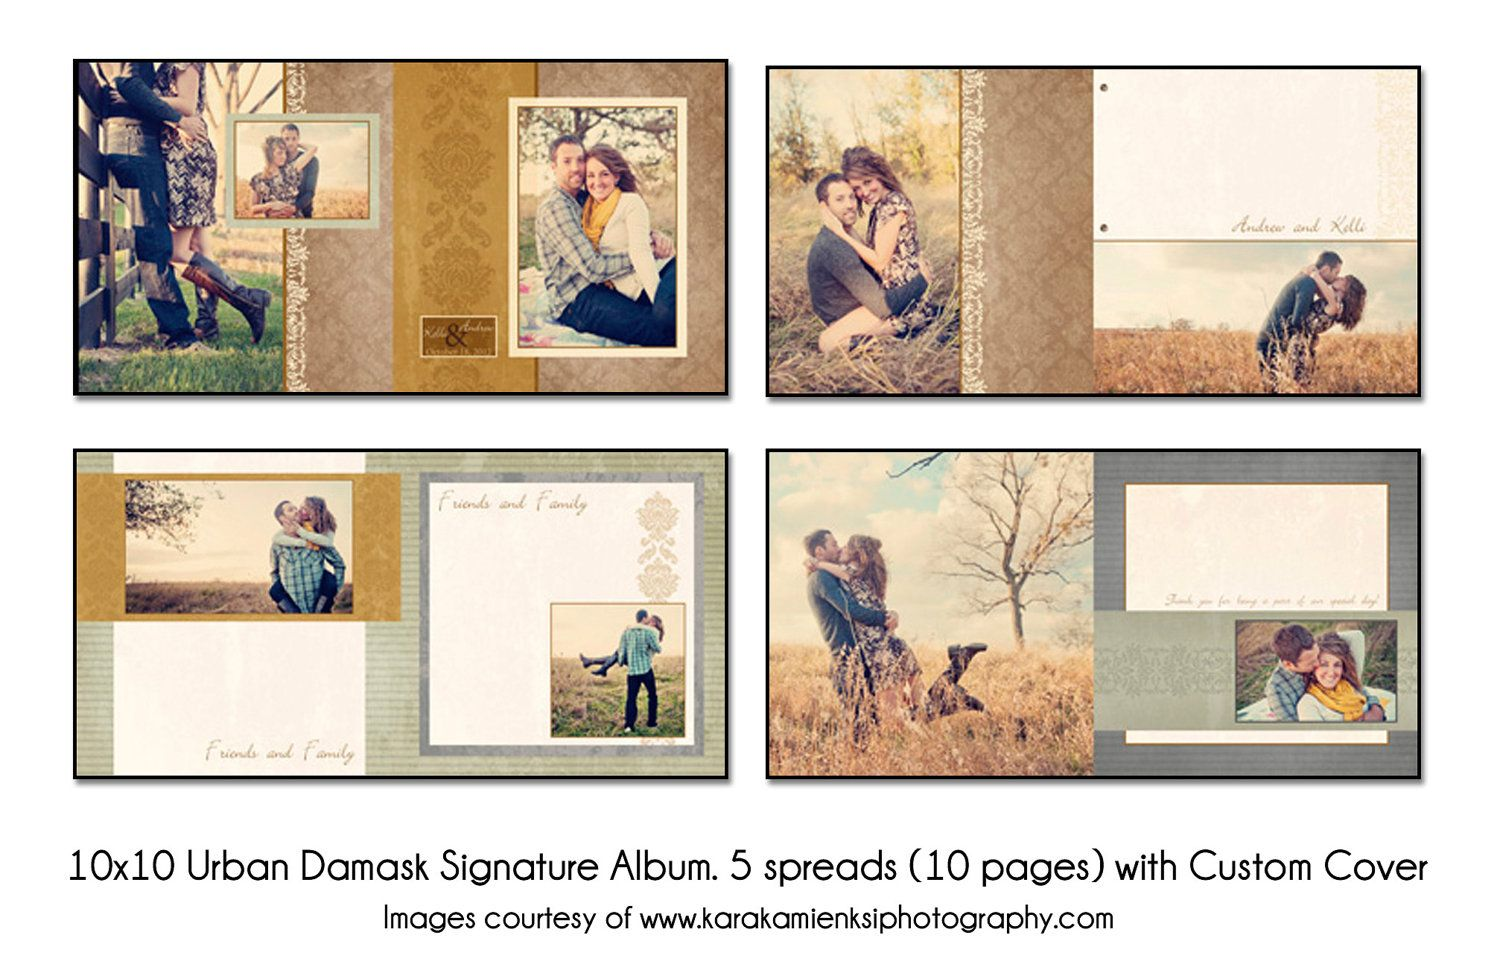 PSD Wedding Album Template - Urban Damask - 12x12 Guest Book - 5 spread (10 page) design with custom cover. $25.00, via Etsy.